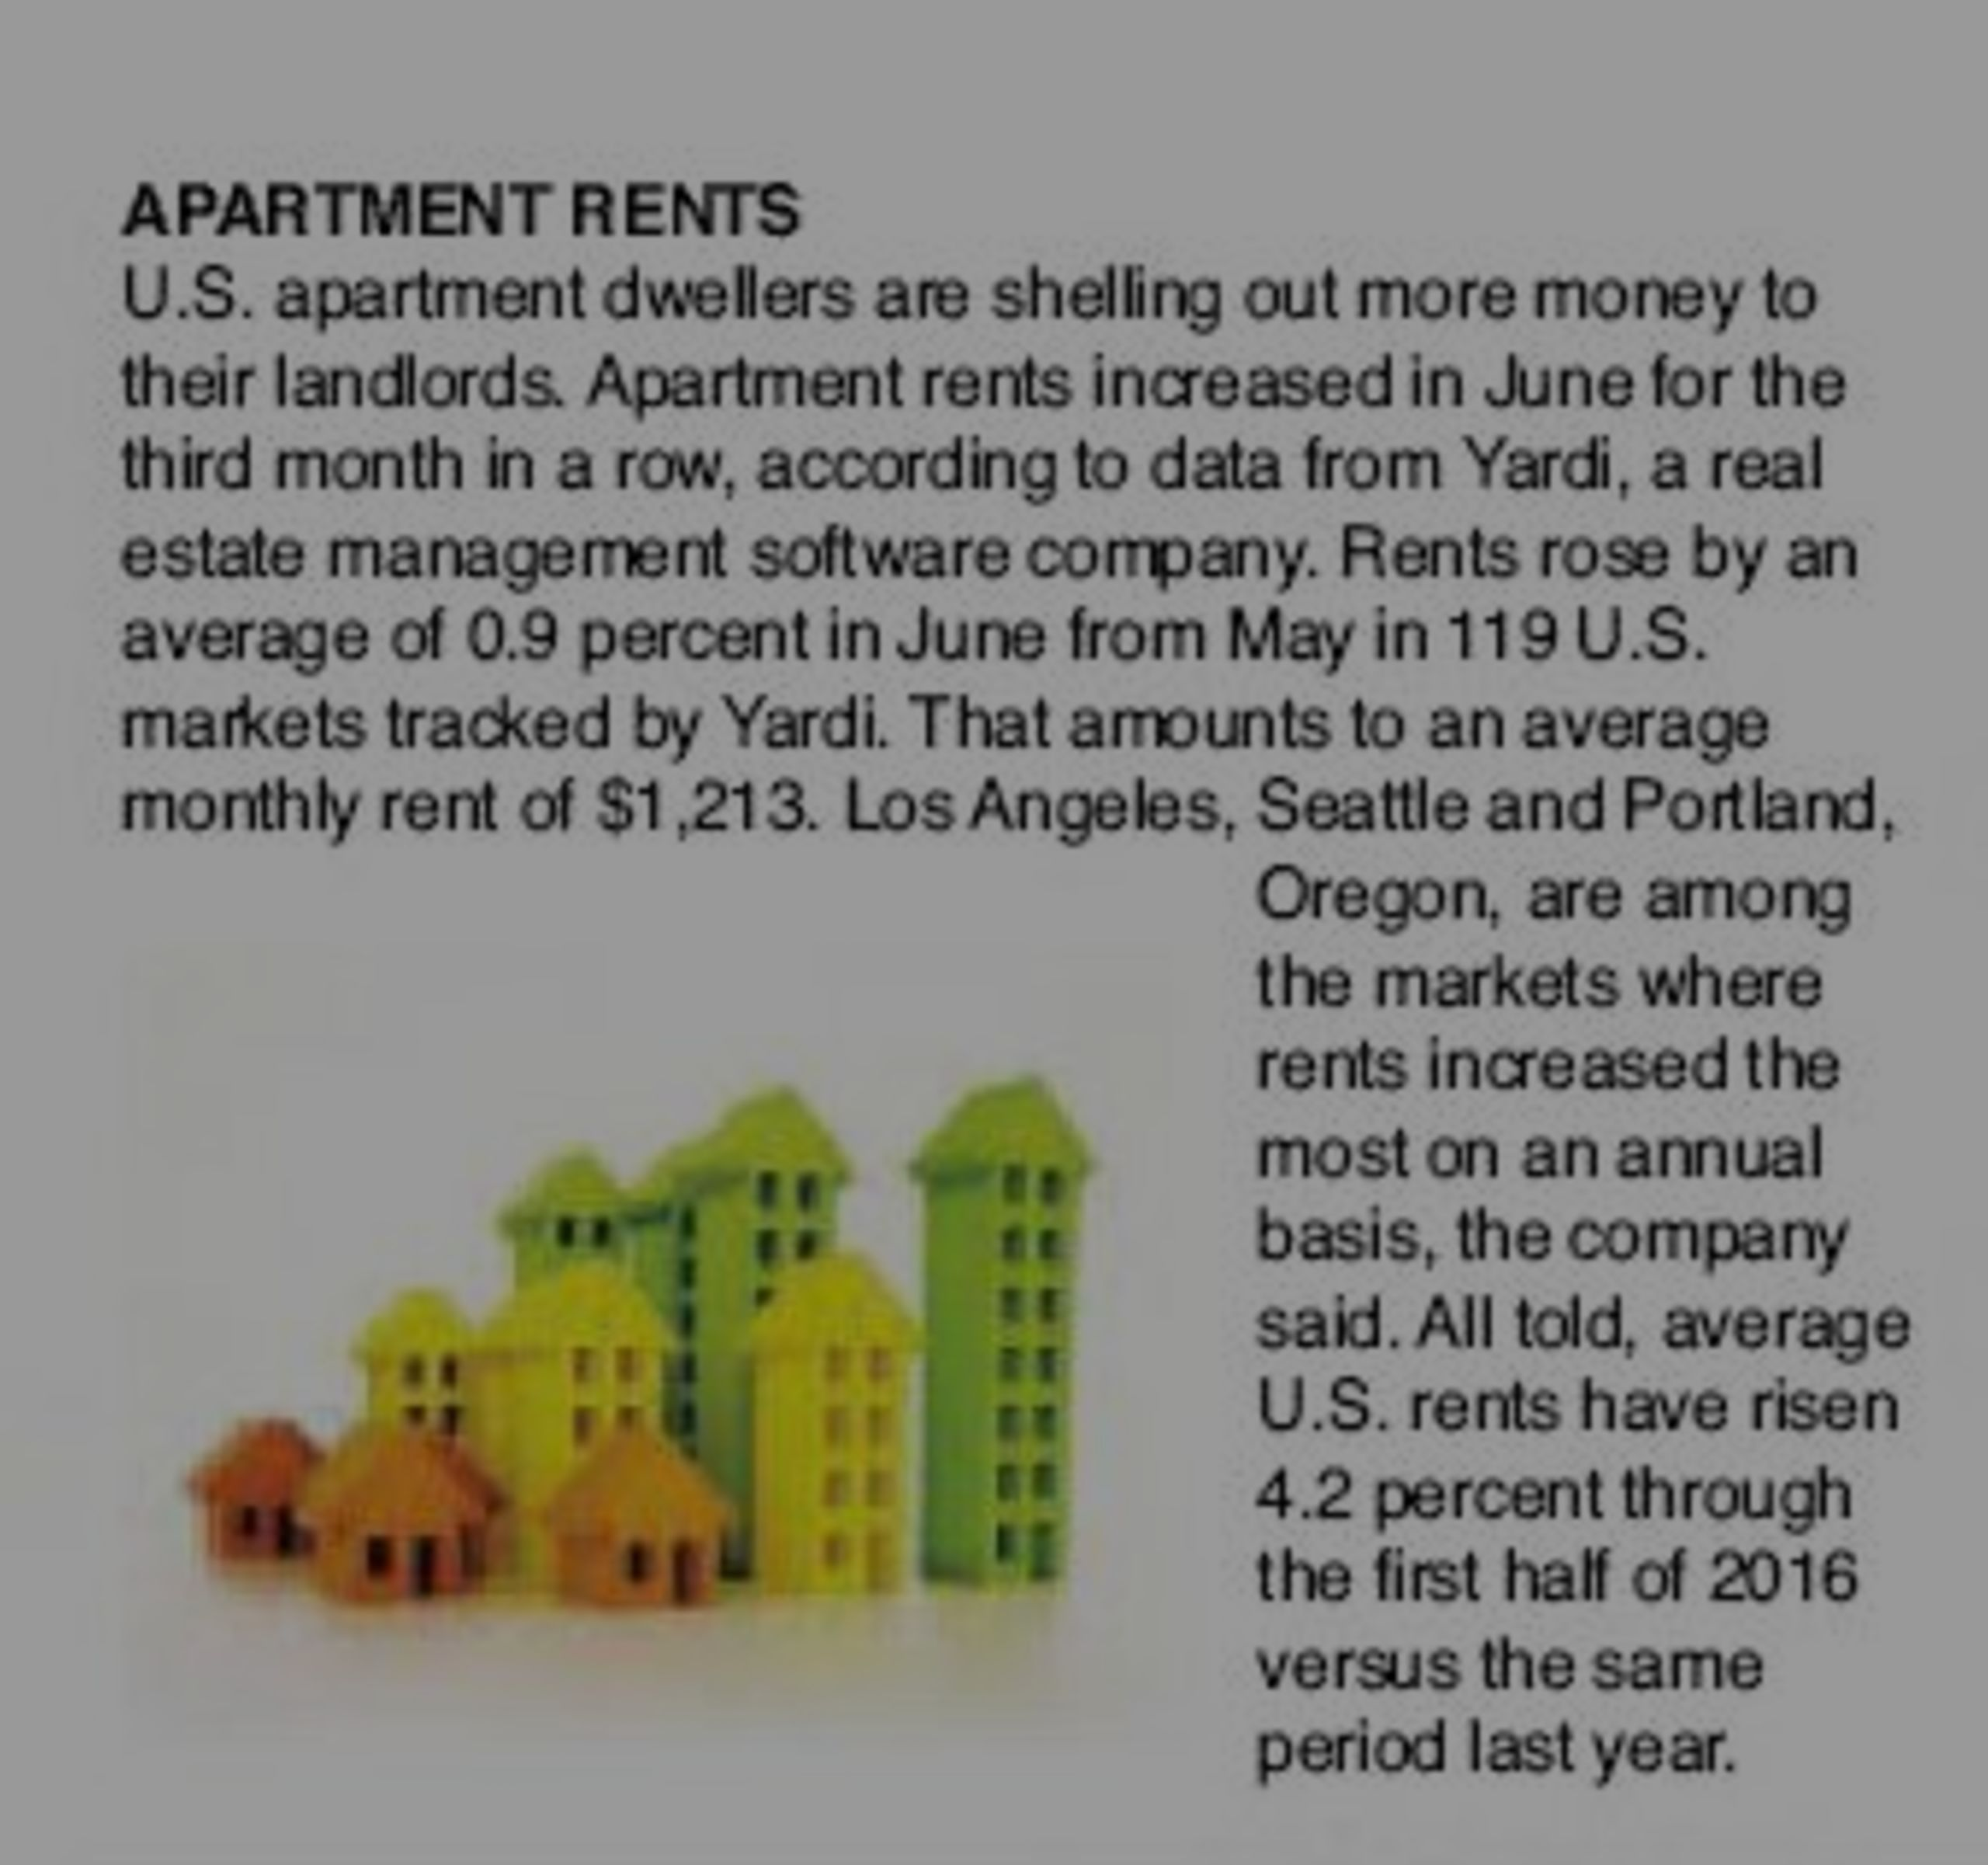 U.S. apartment dwellers are shelling out more money to their landlords. Apartment rents increased in June 2016